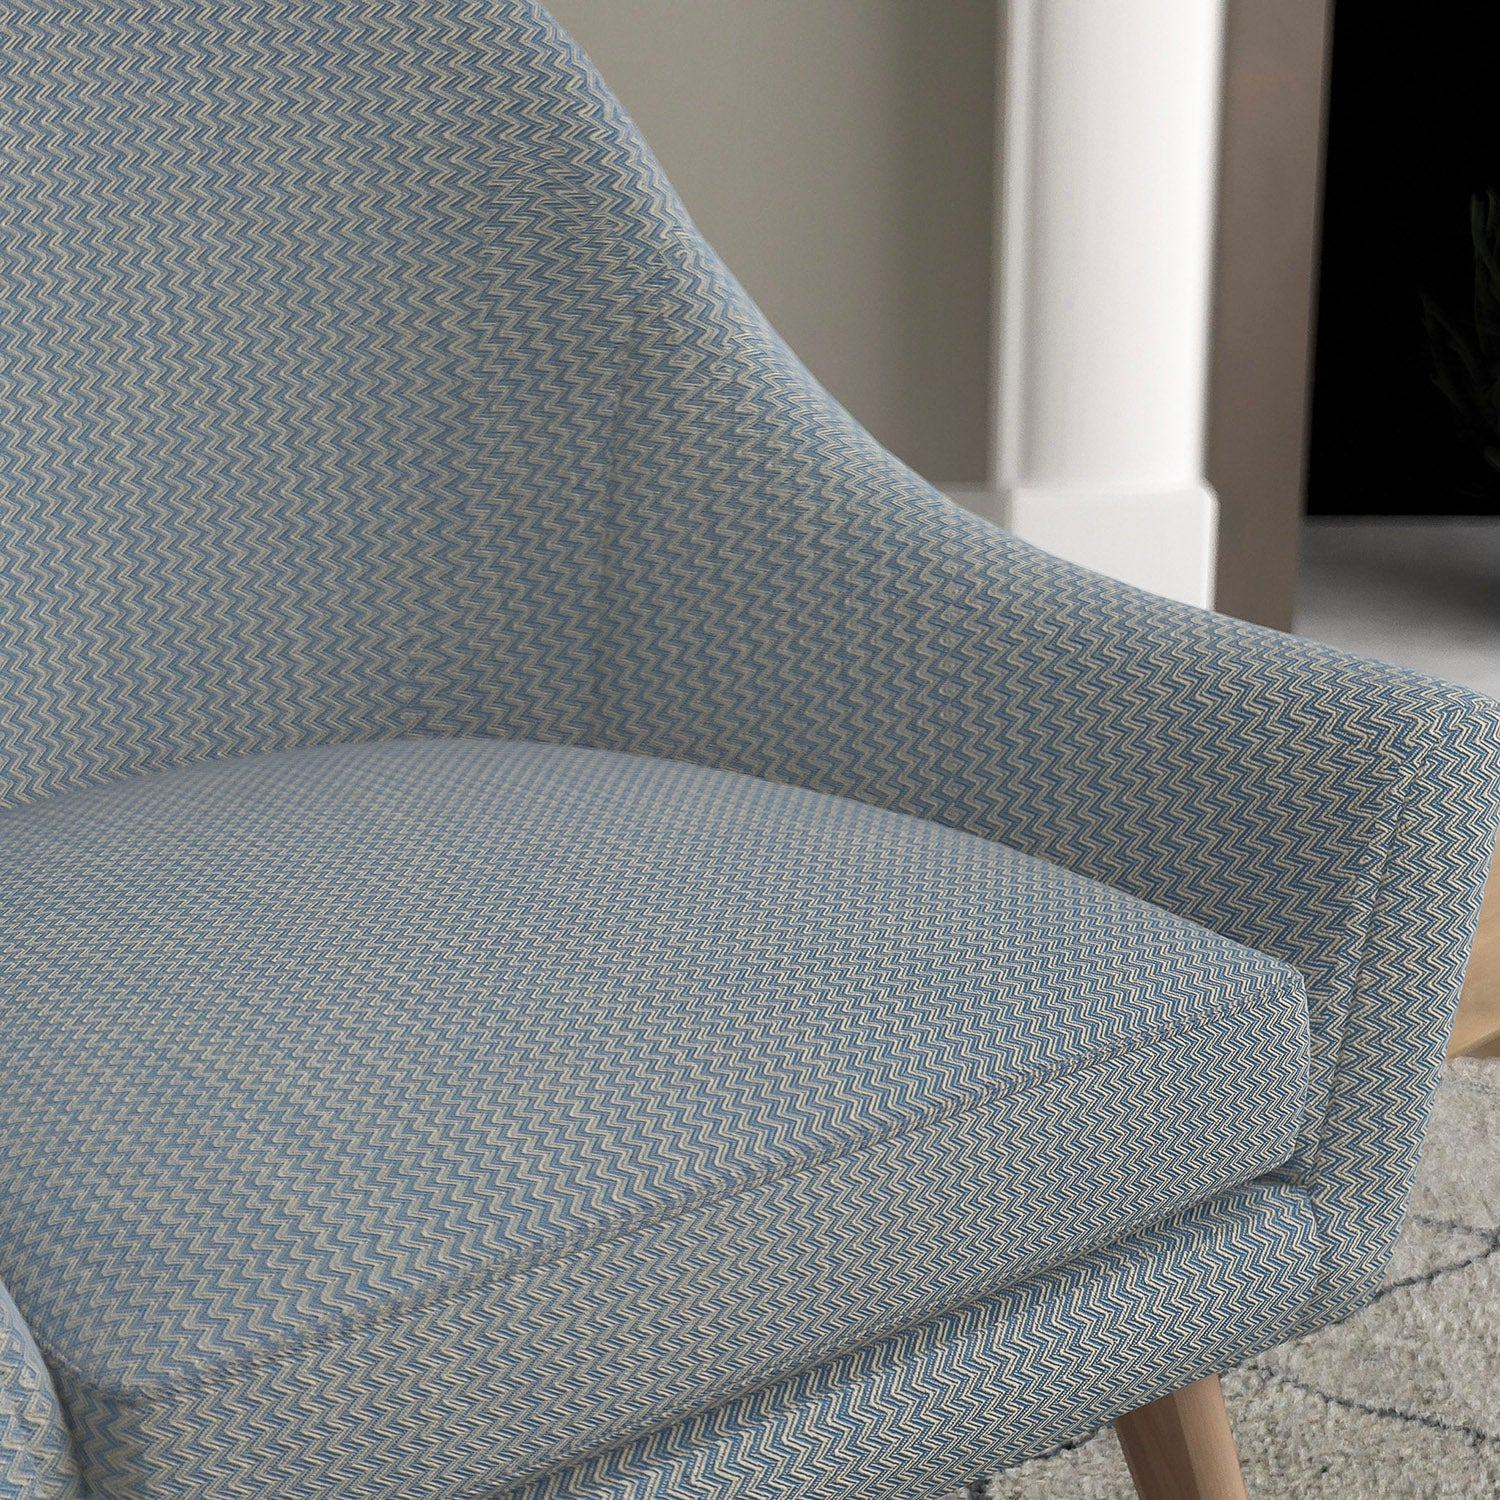 Chair in a blue and neutral zig zag weave fabric